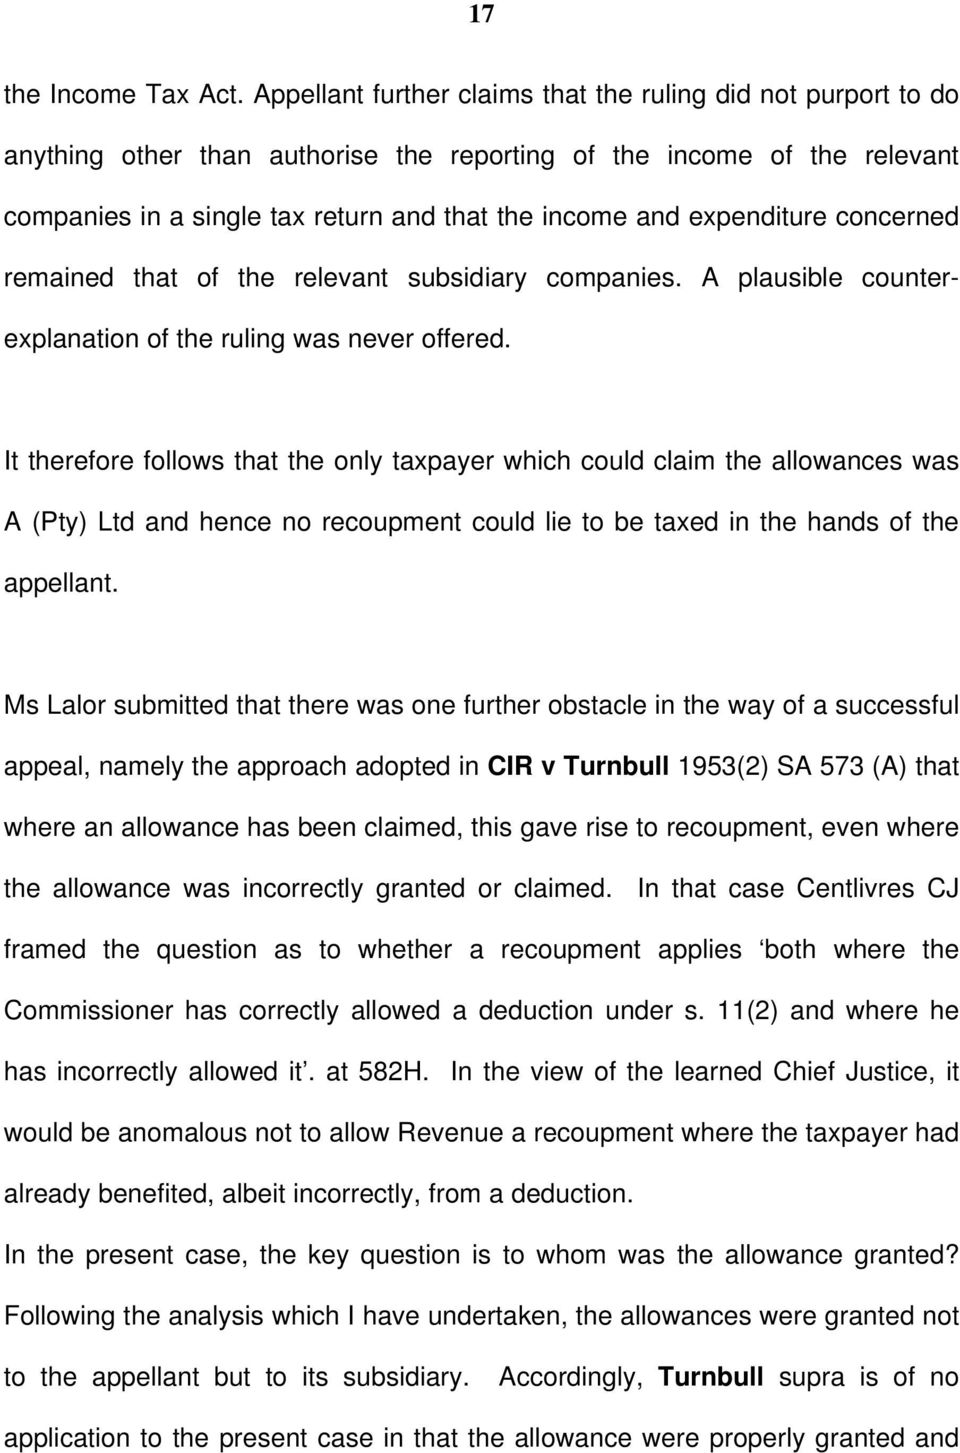 expenditure concerned remained that of the relevant subsidiary companies. A plausible counterexplanation of the ruling was never offered.